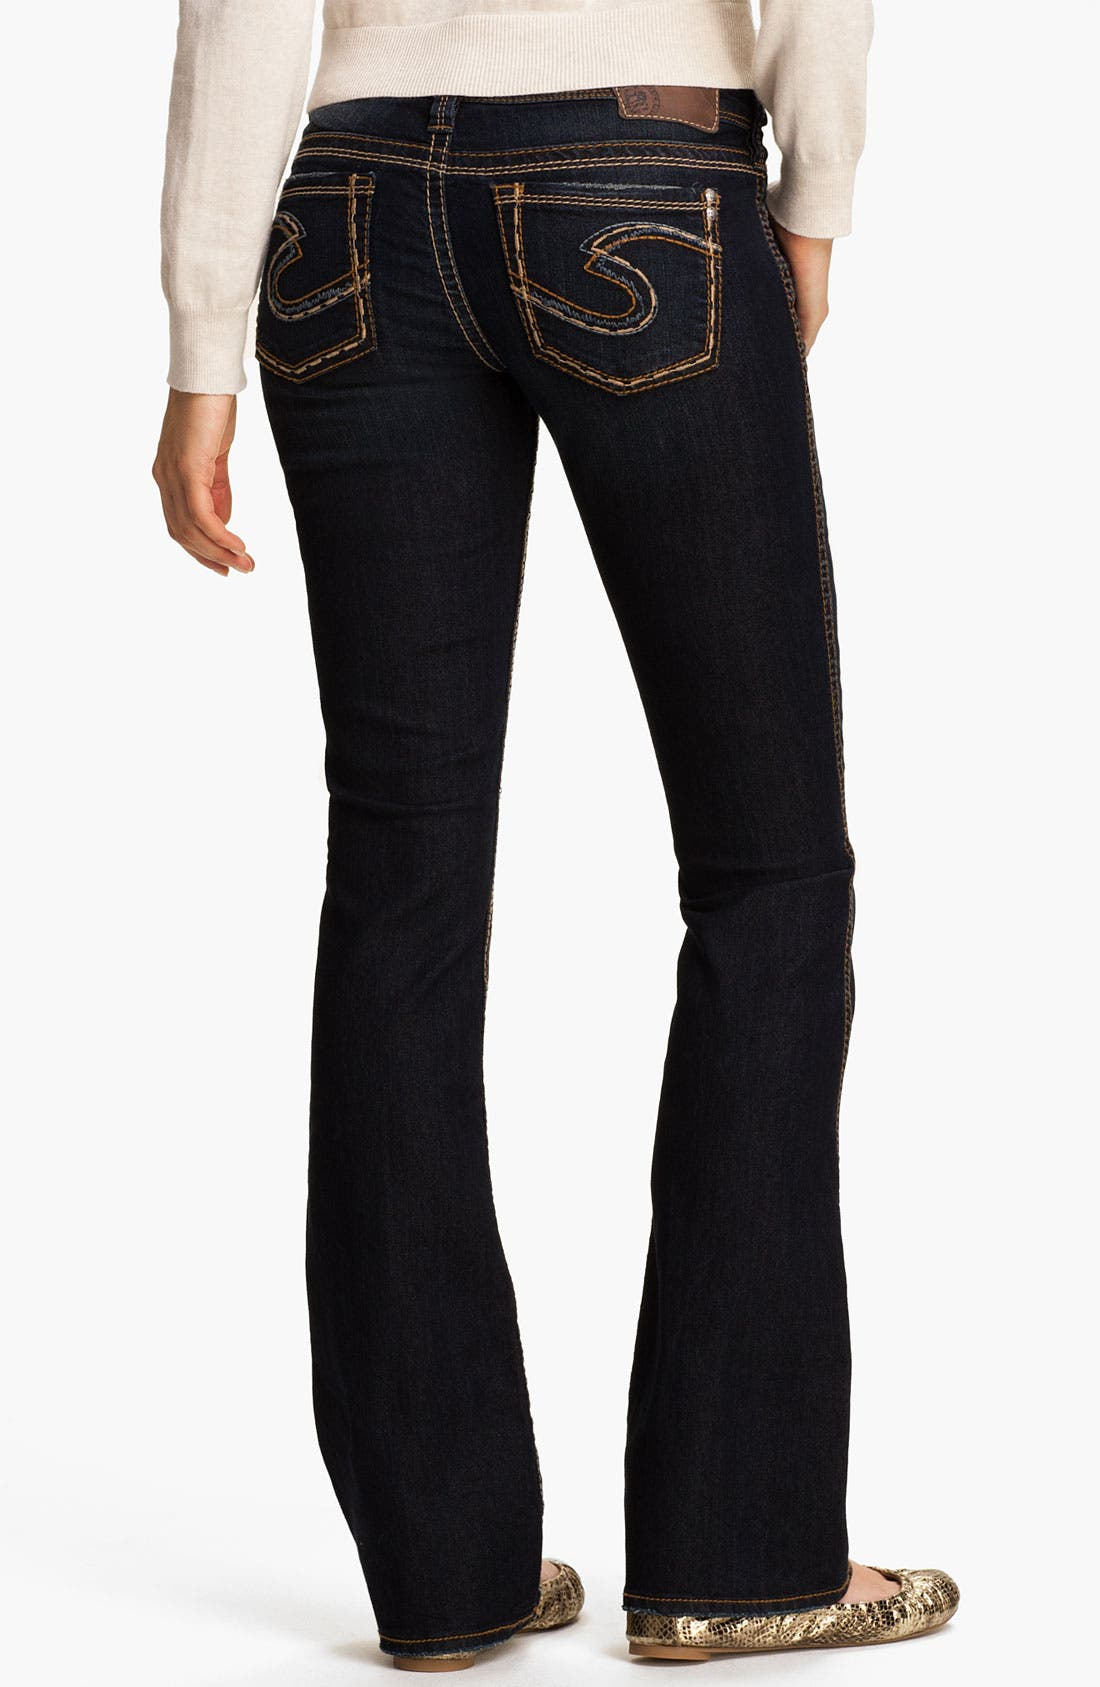 Alternate Image 1 Selected - Silver Jeans Co. 'Frances' Bootcut Jeans (Juniors)